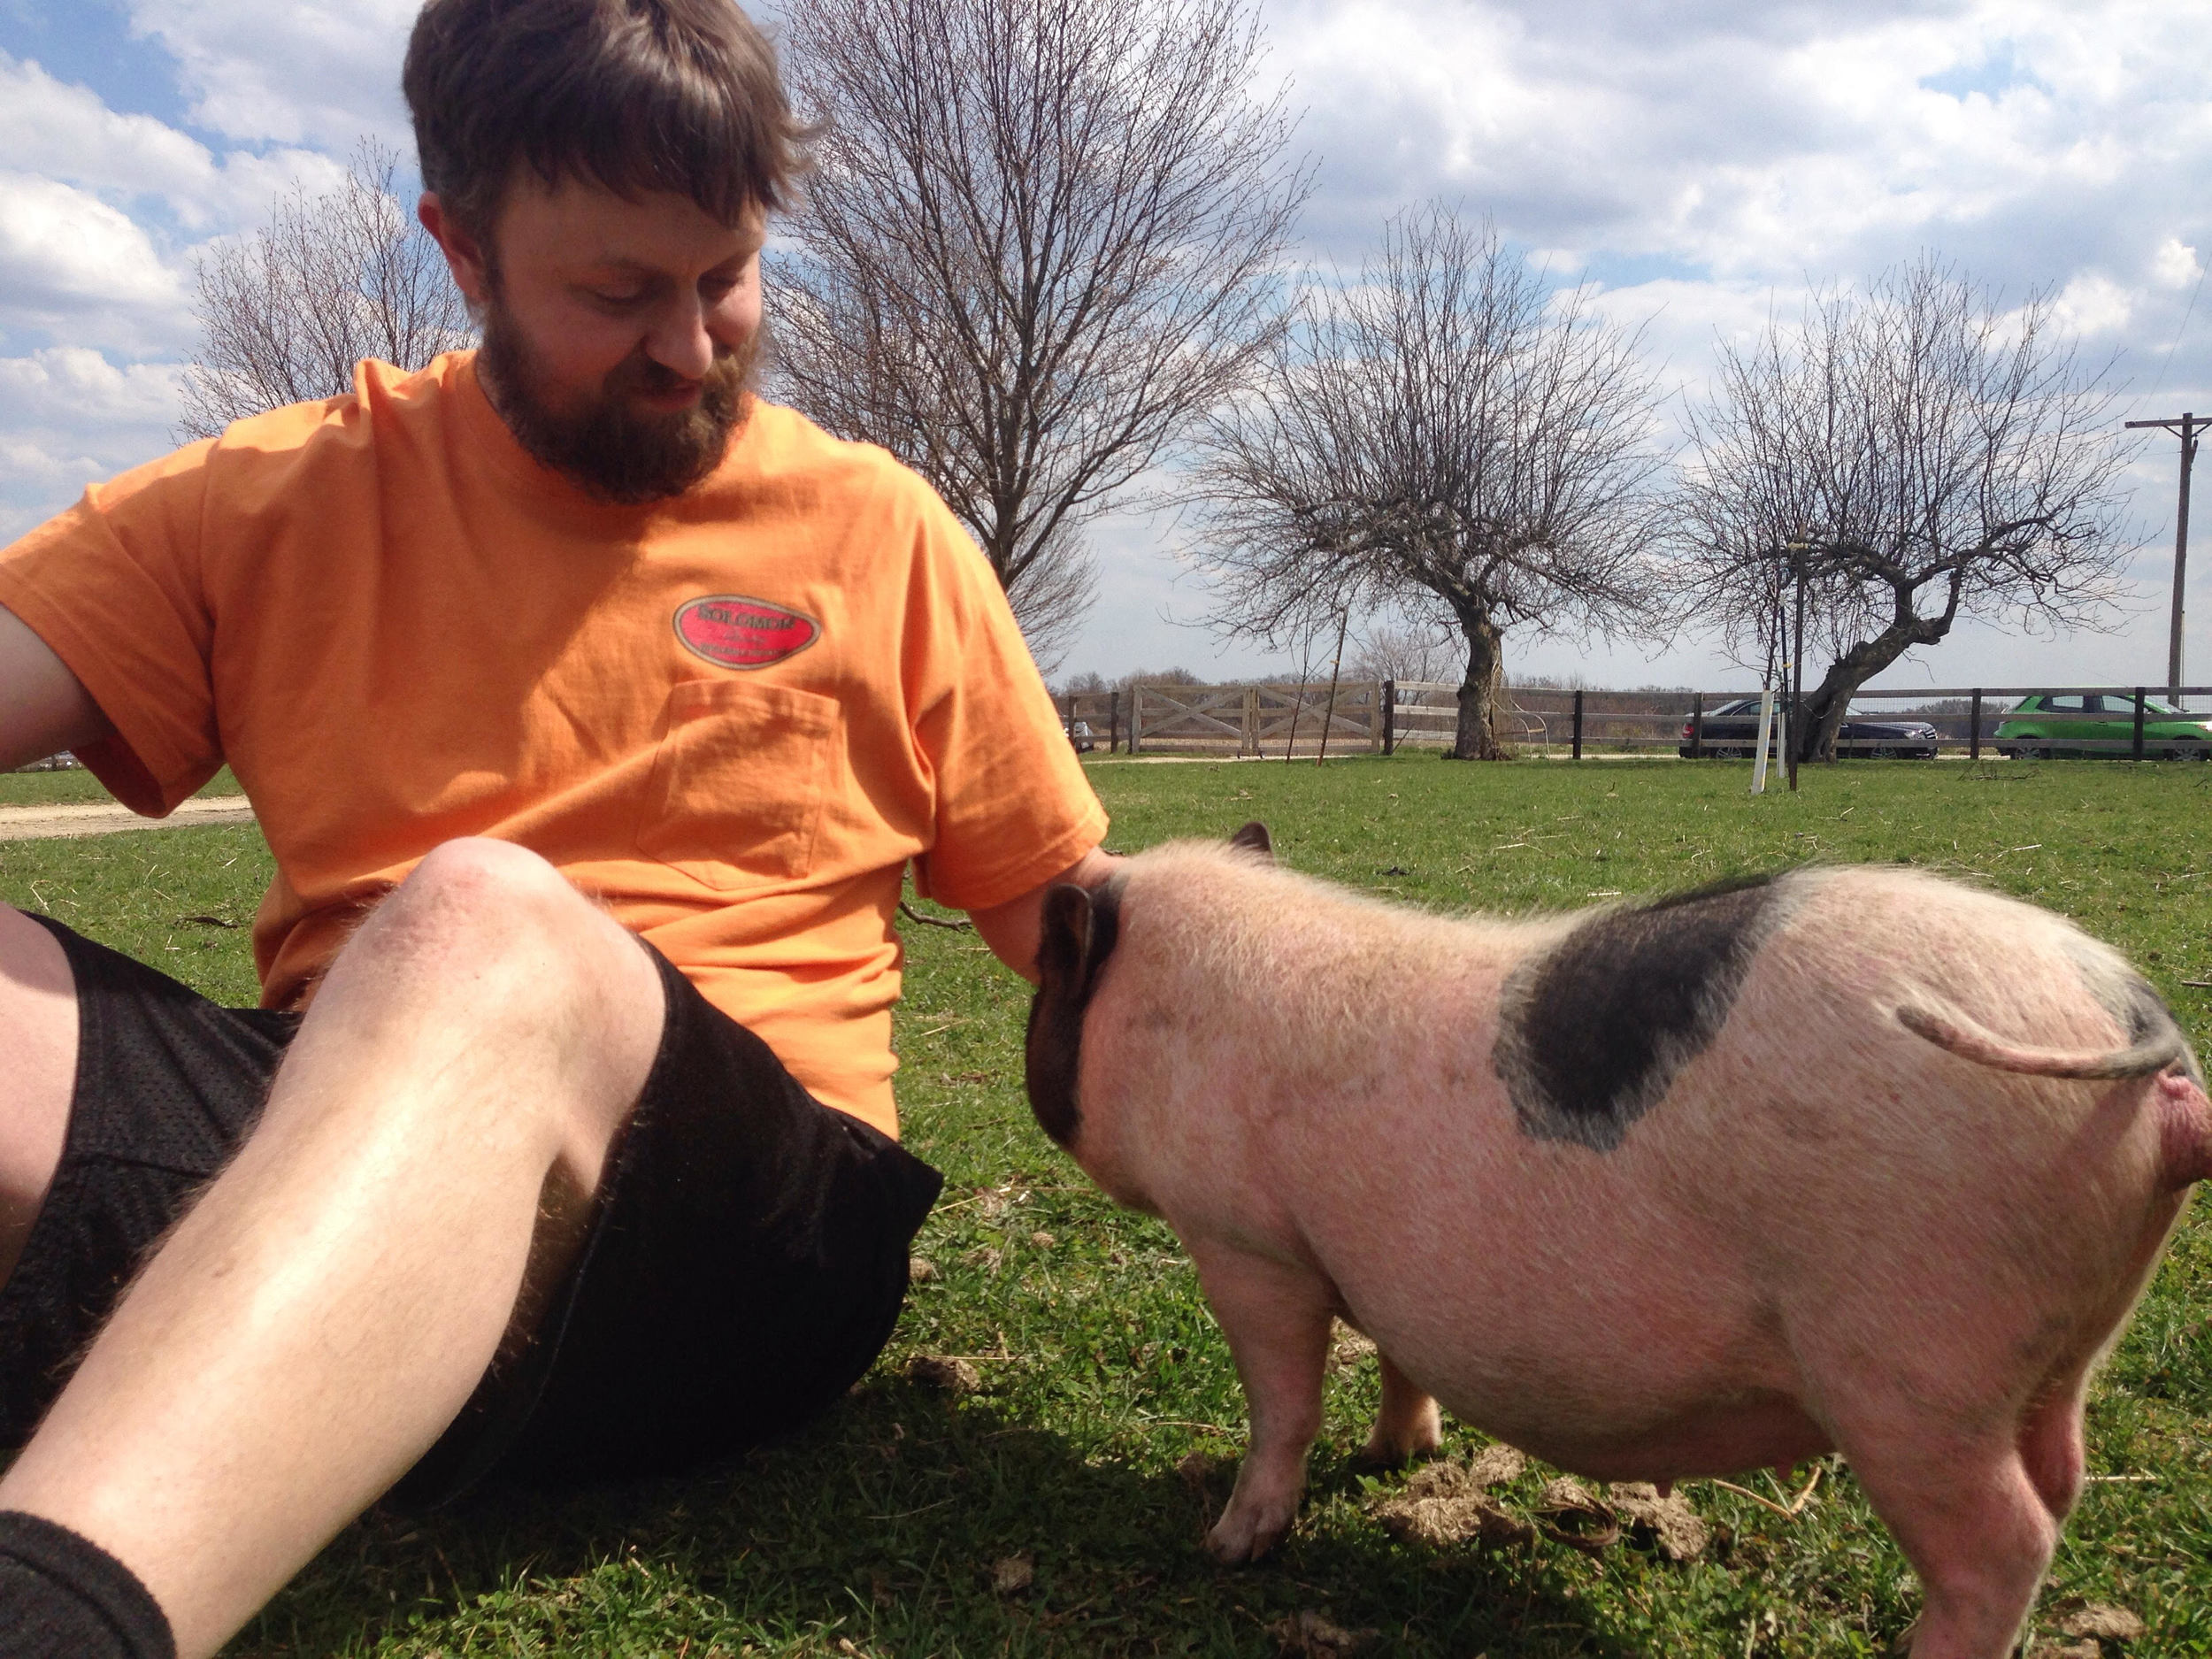 Paul hanging out with a pig